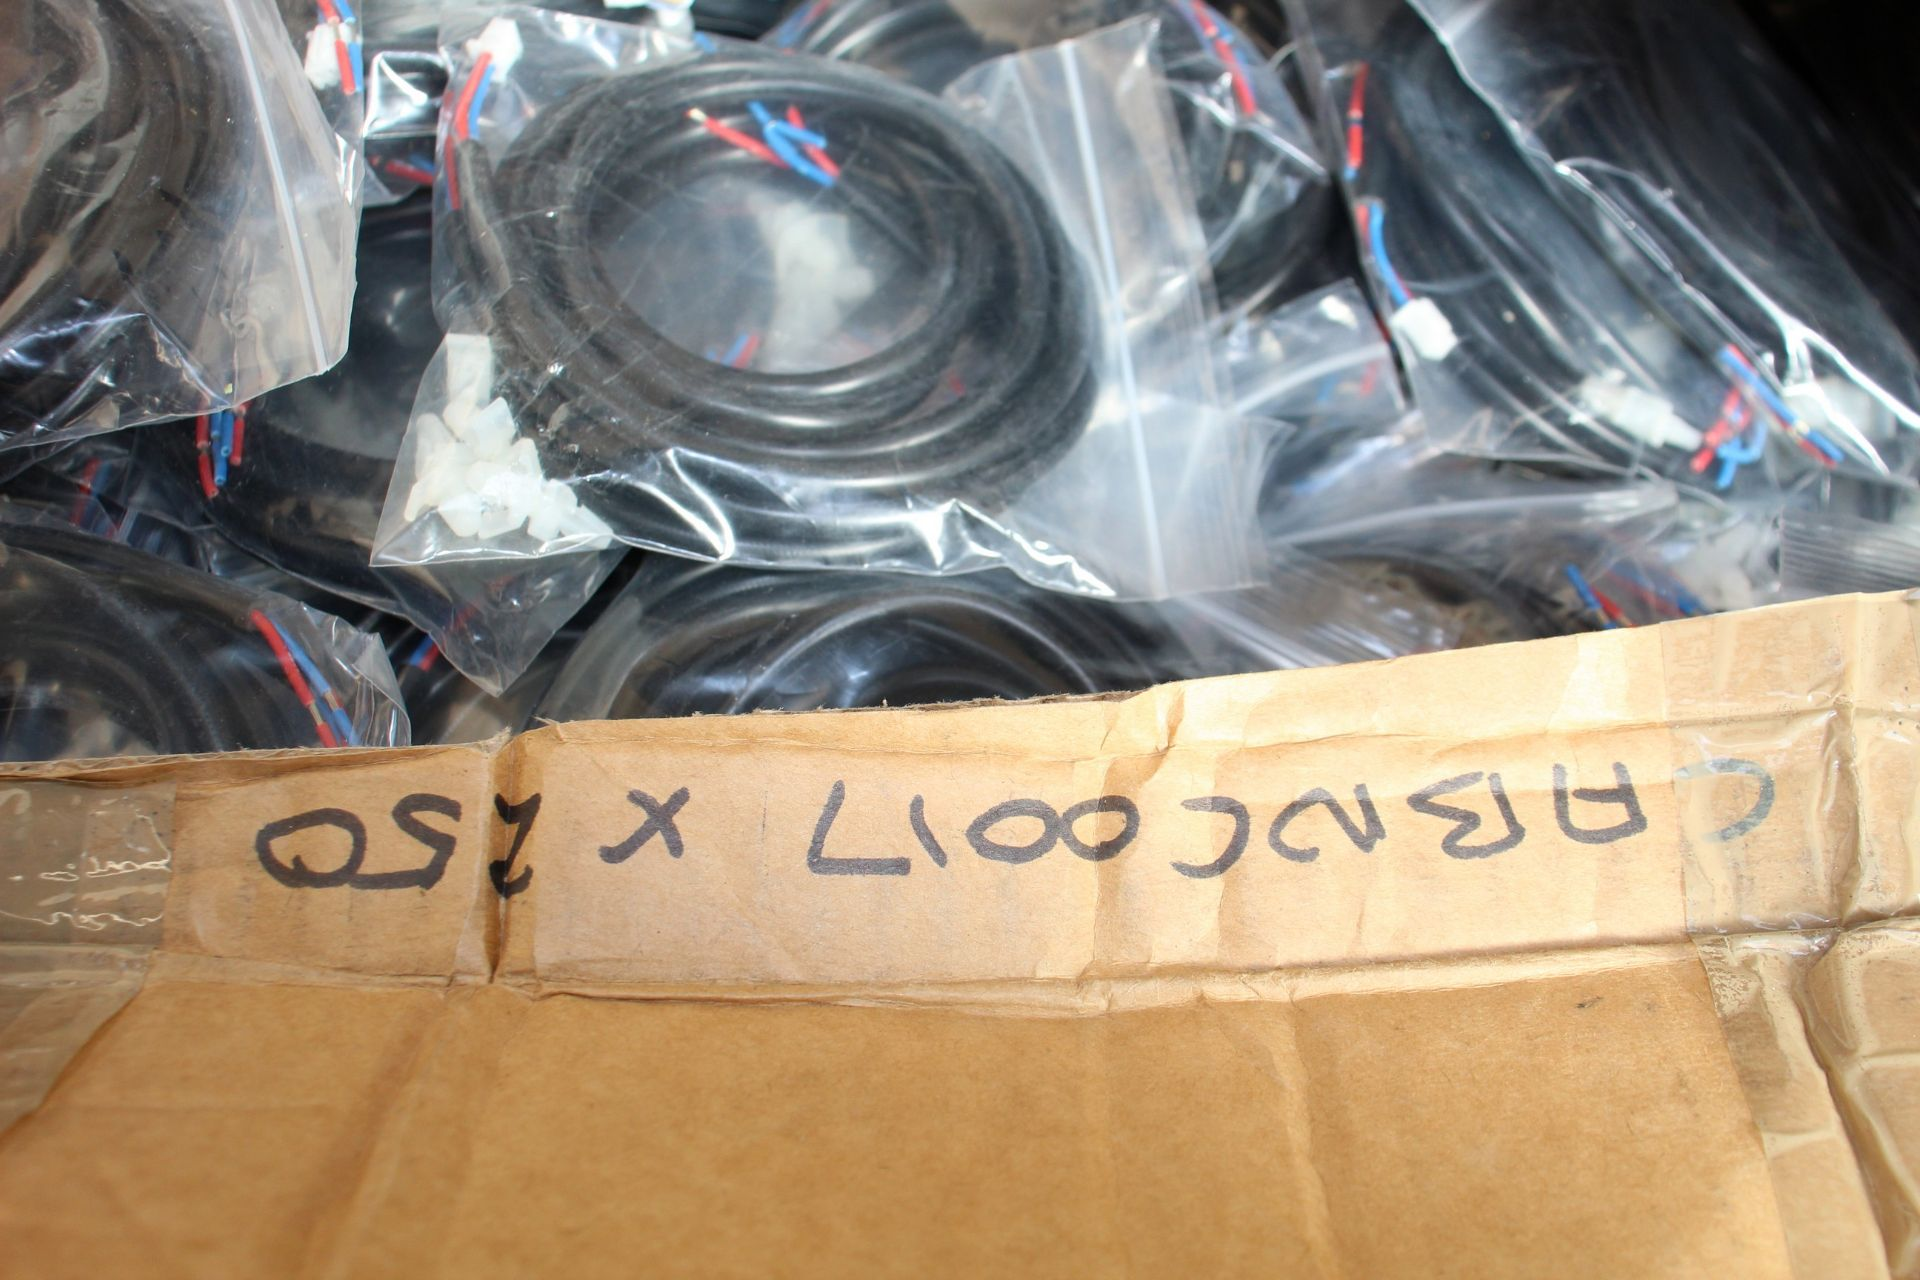 COLLECTION ONLY: A large quantity of assorted as new cables and plugs. - Image 9 of 11